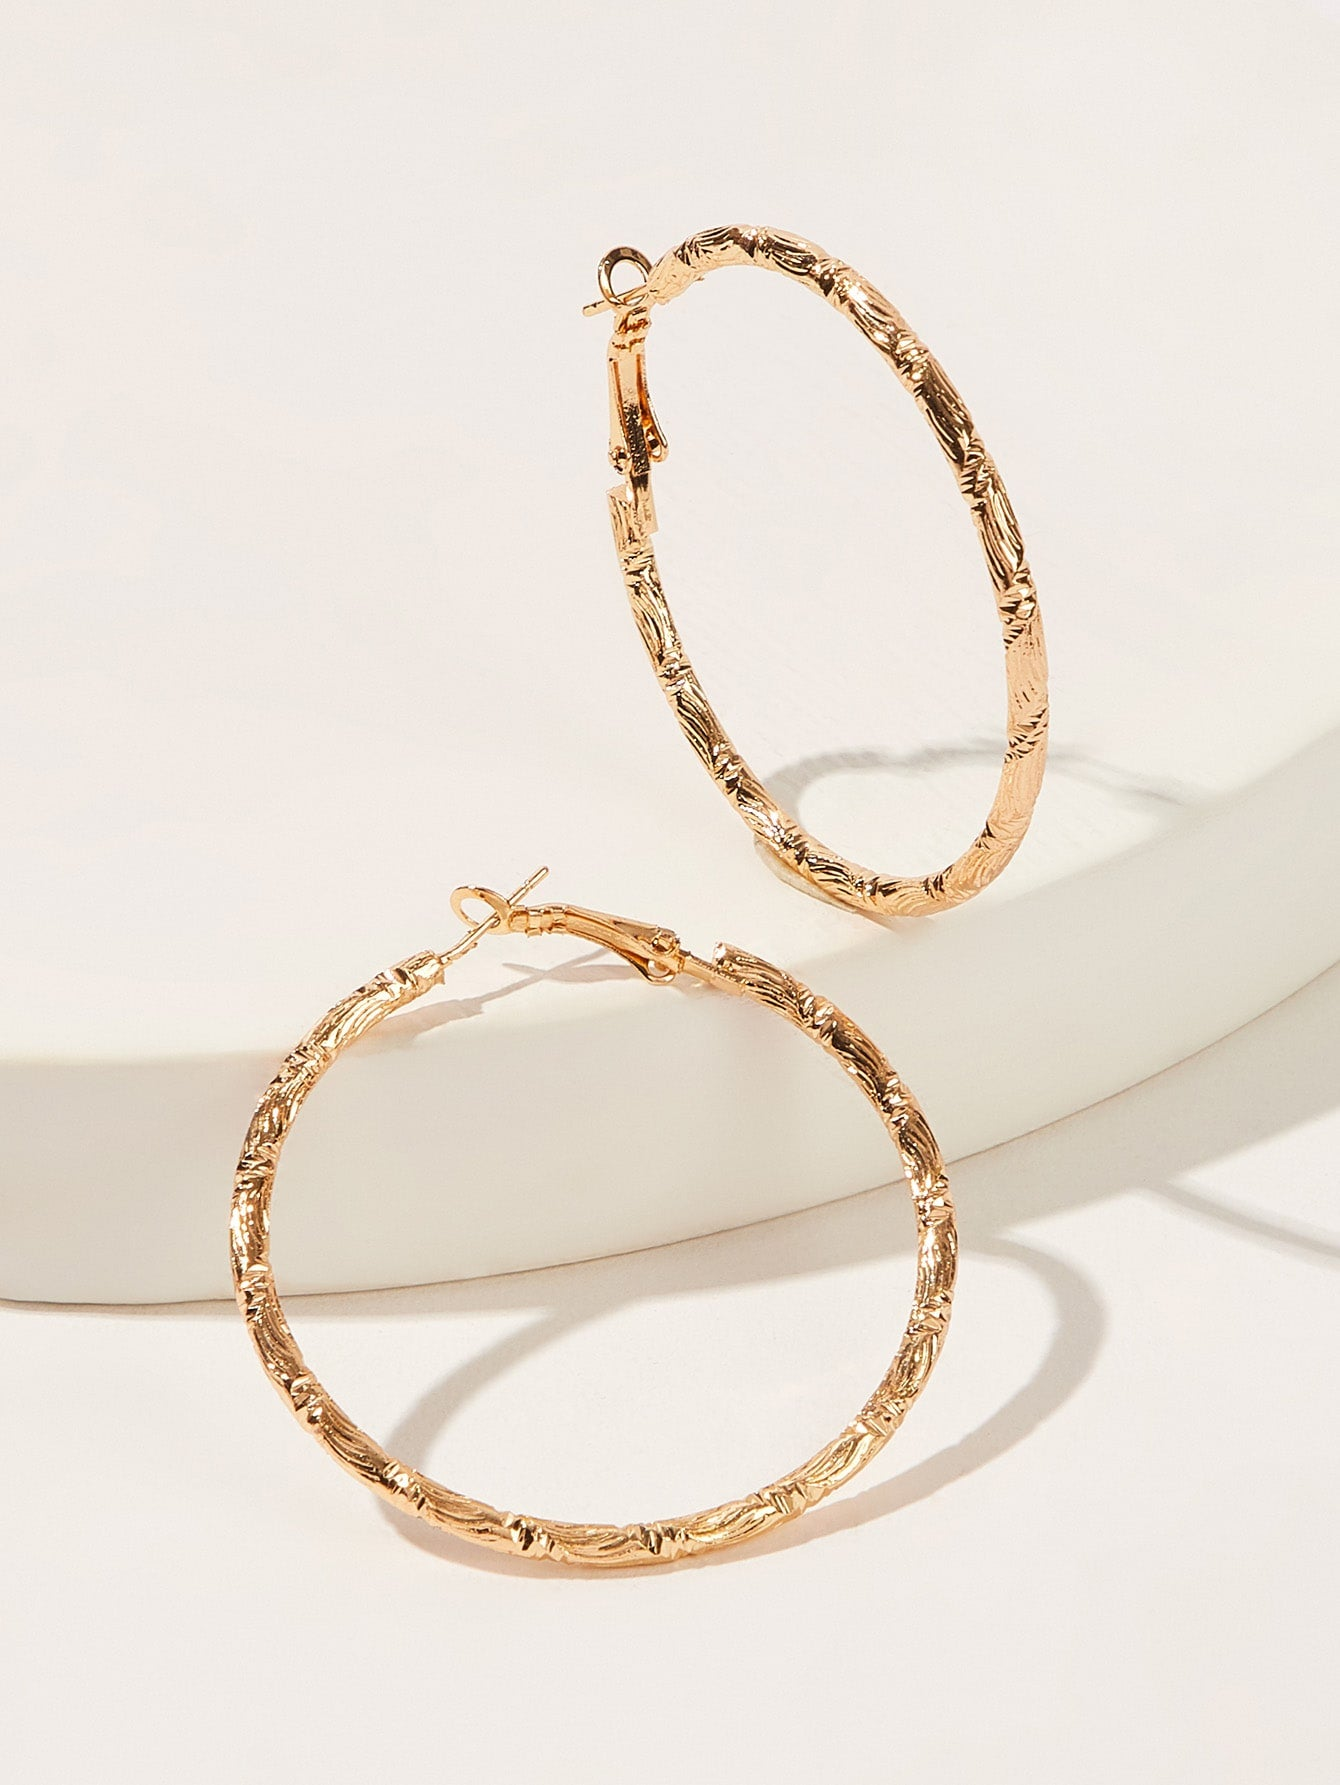 Golden Textured Metal 1 Pair Hoop Earrings